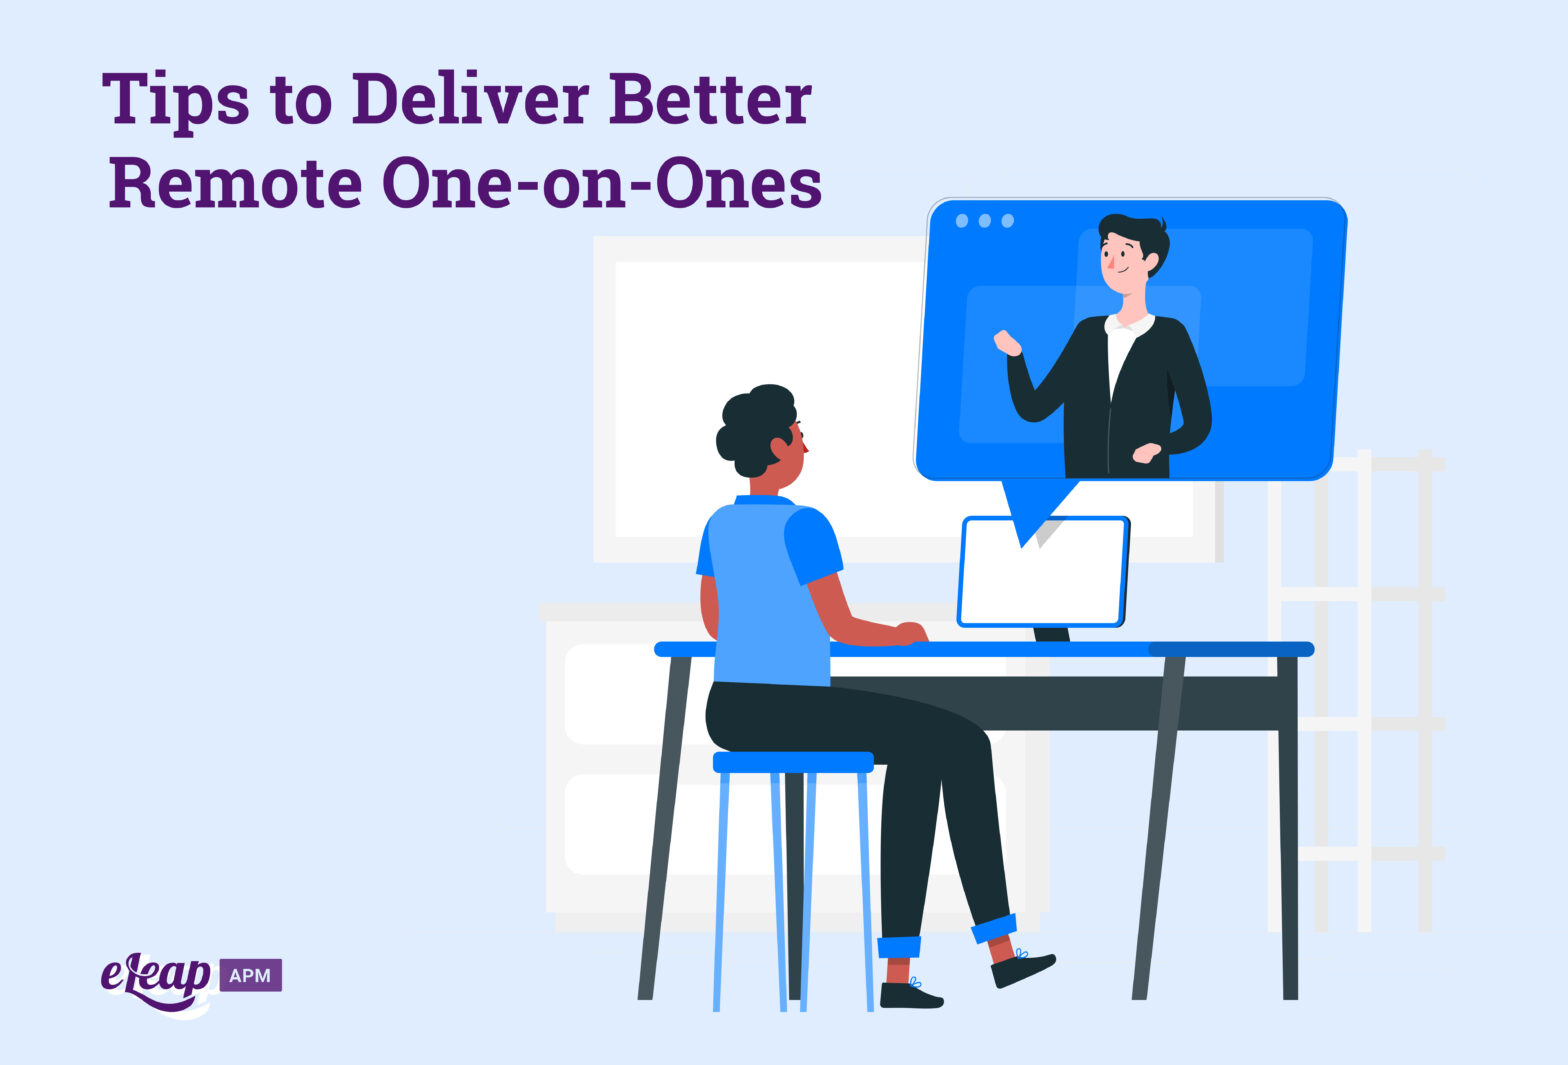 Tips to Deliver Better Remote One-on-Ones